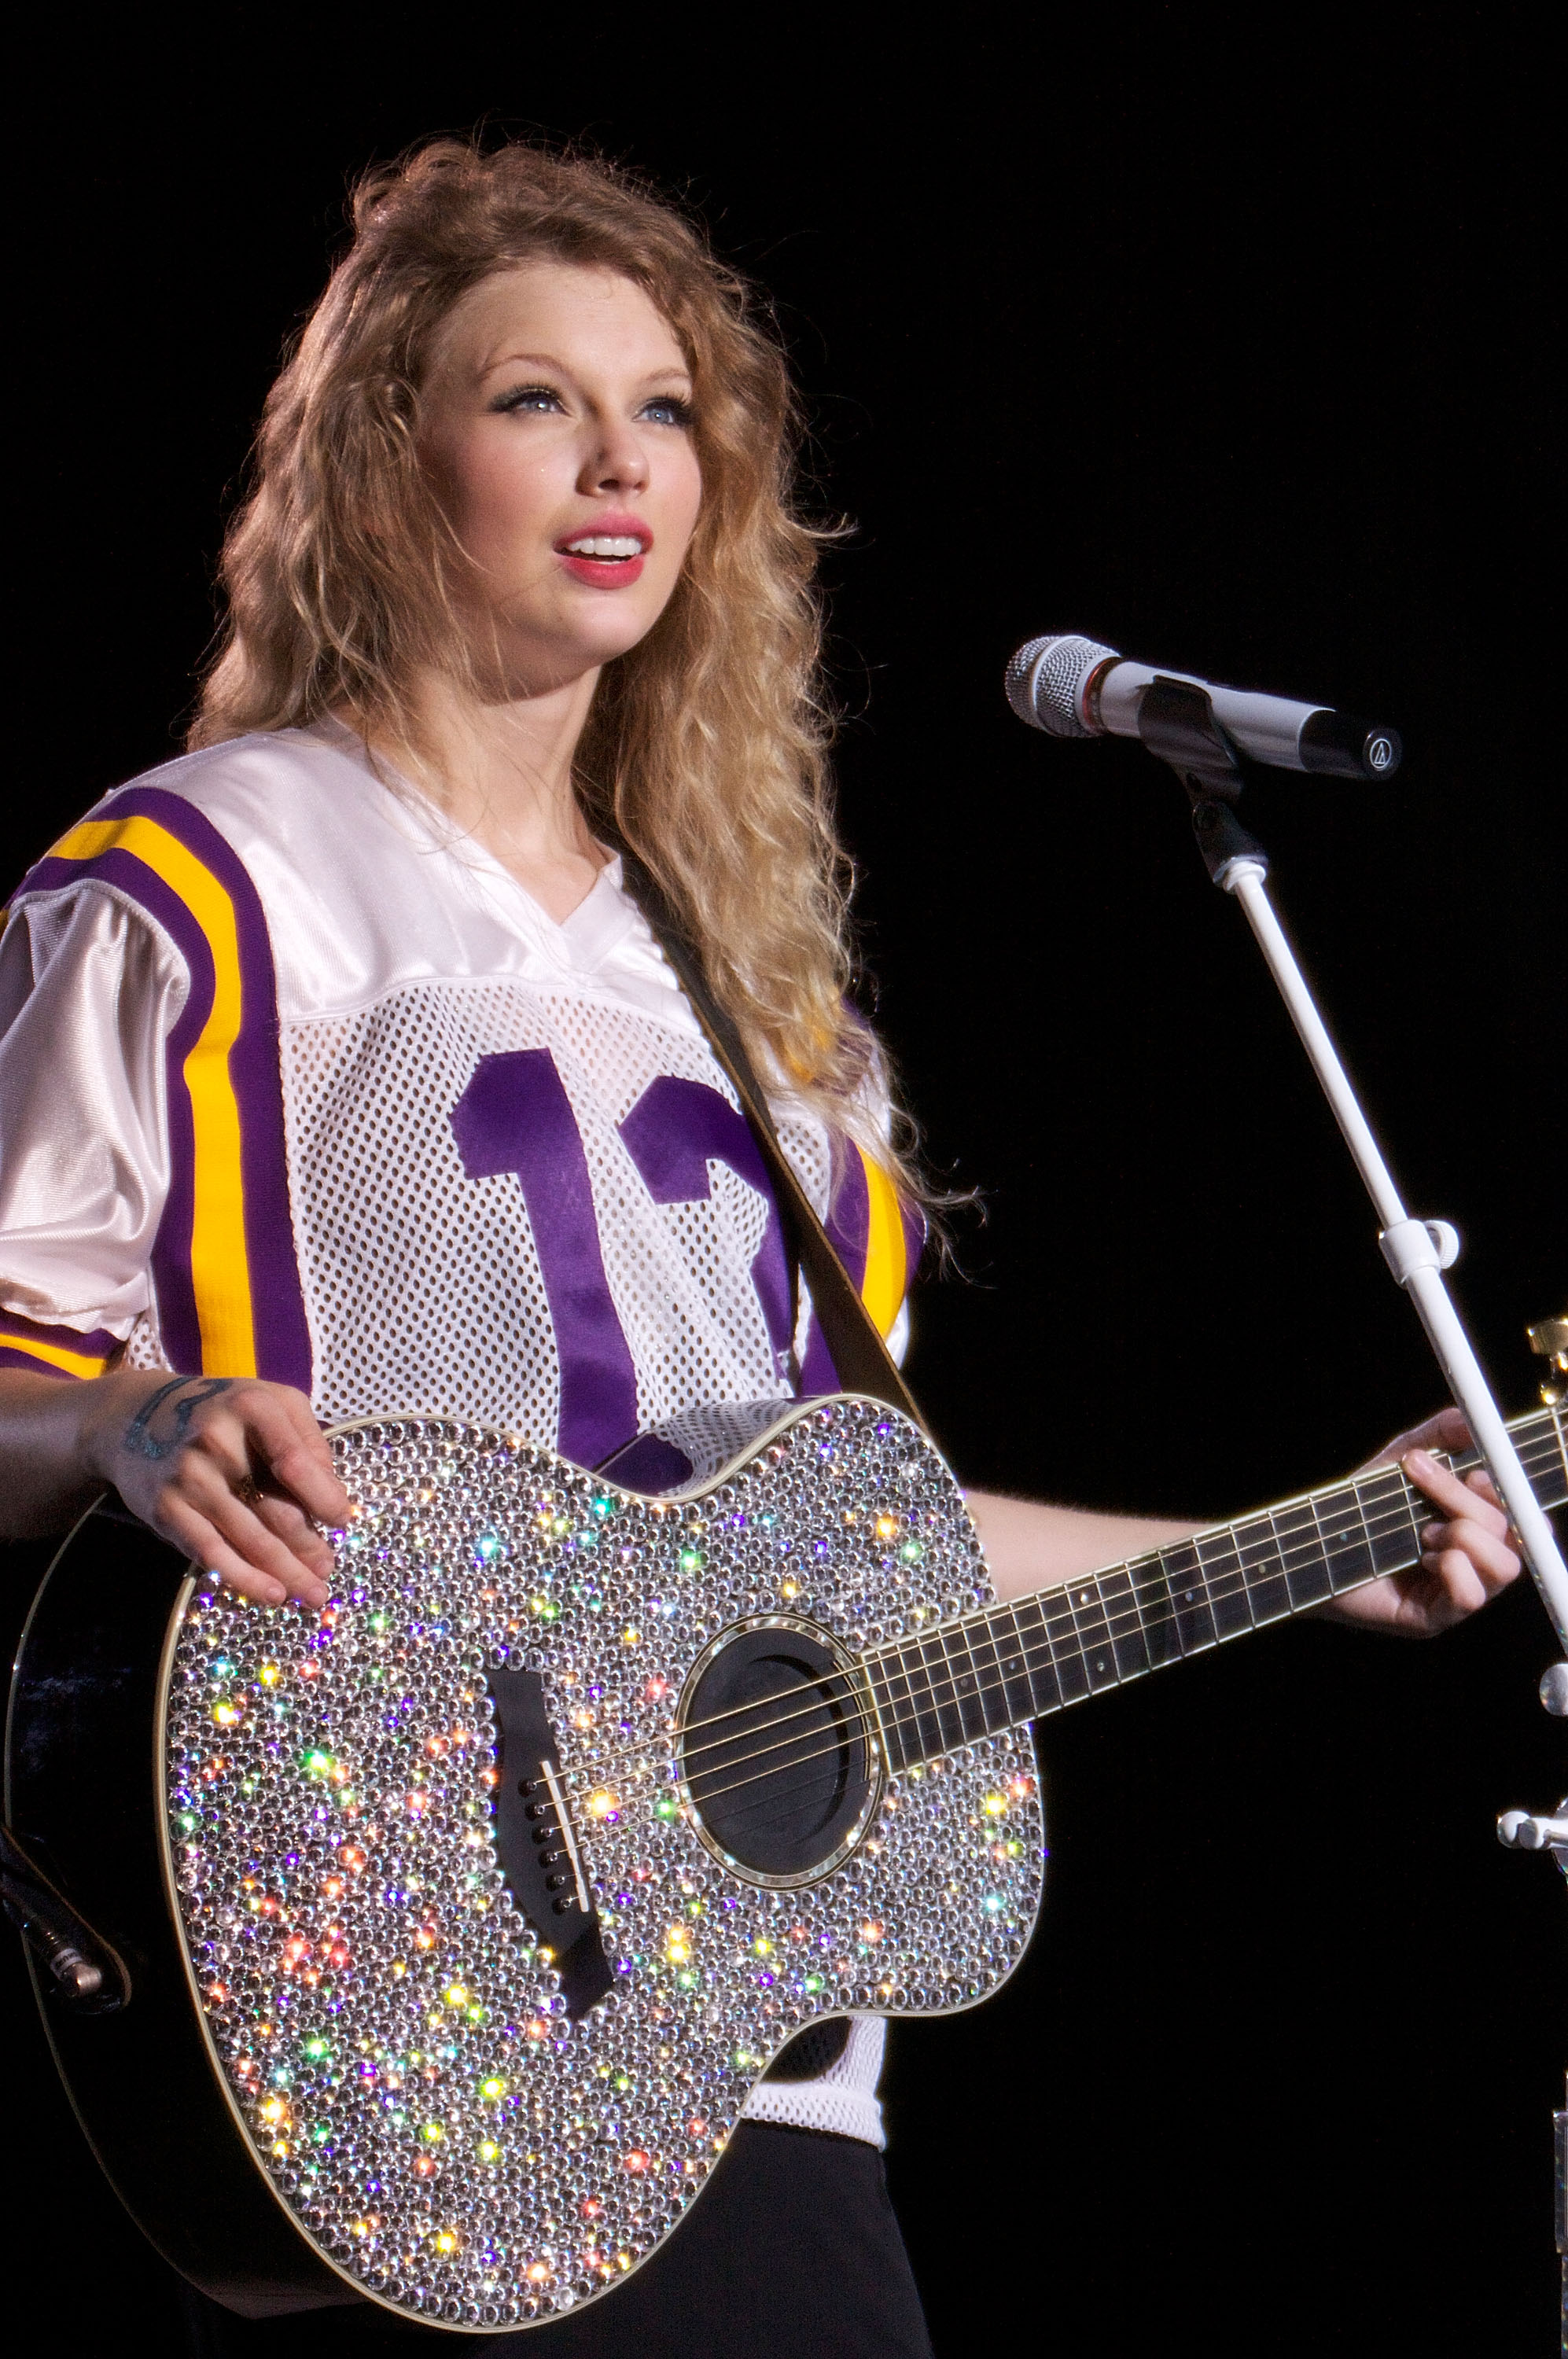 32524_Taylor_swift_performs_her_Fearless_Tour_at_Tiger_Stadium_007_122_493lo.jpg